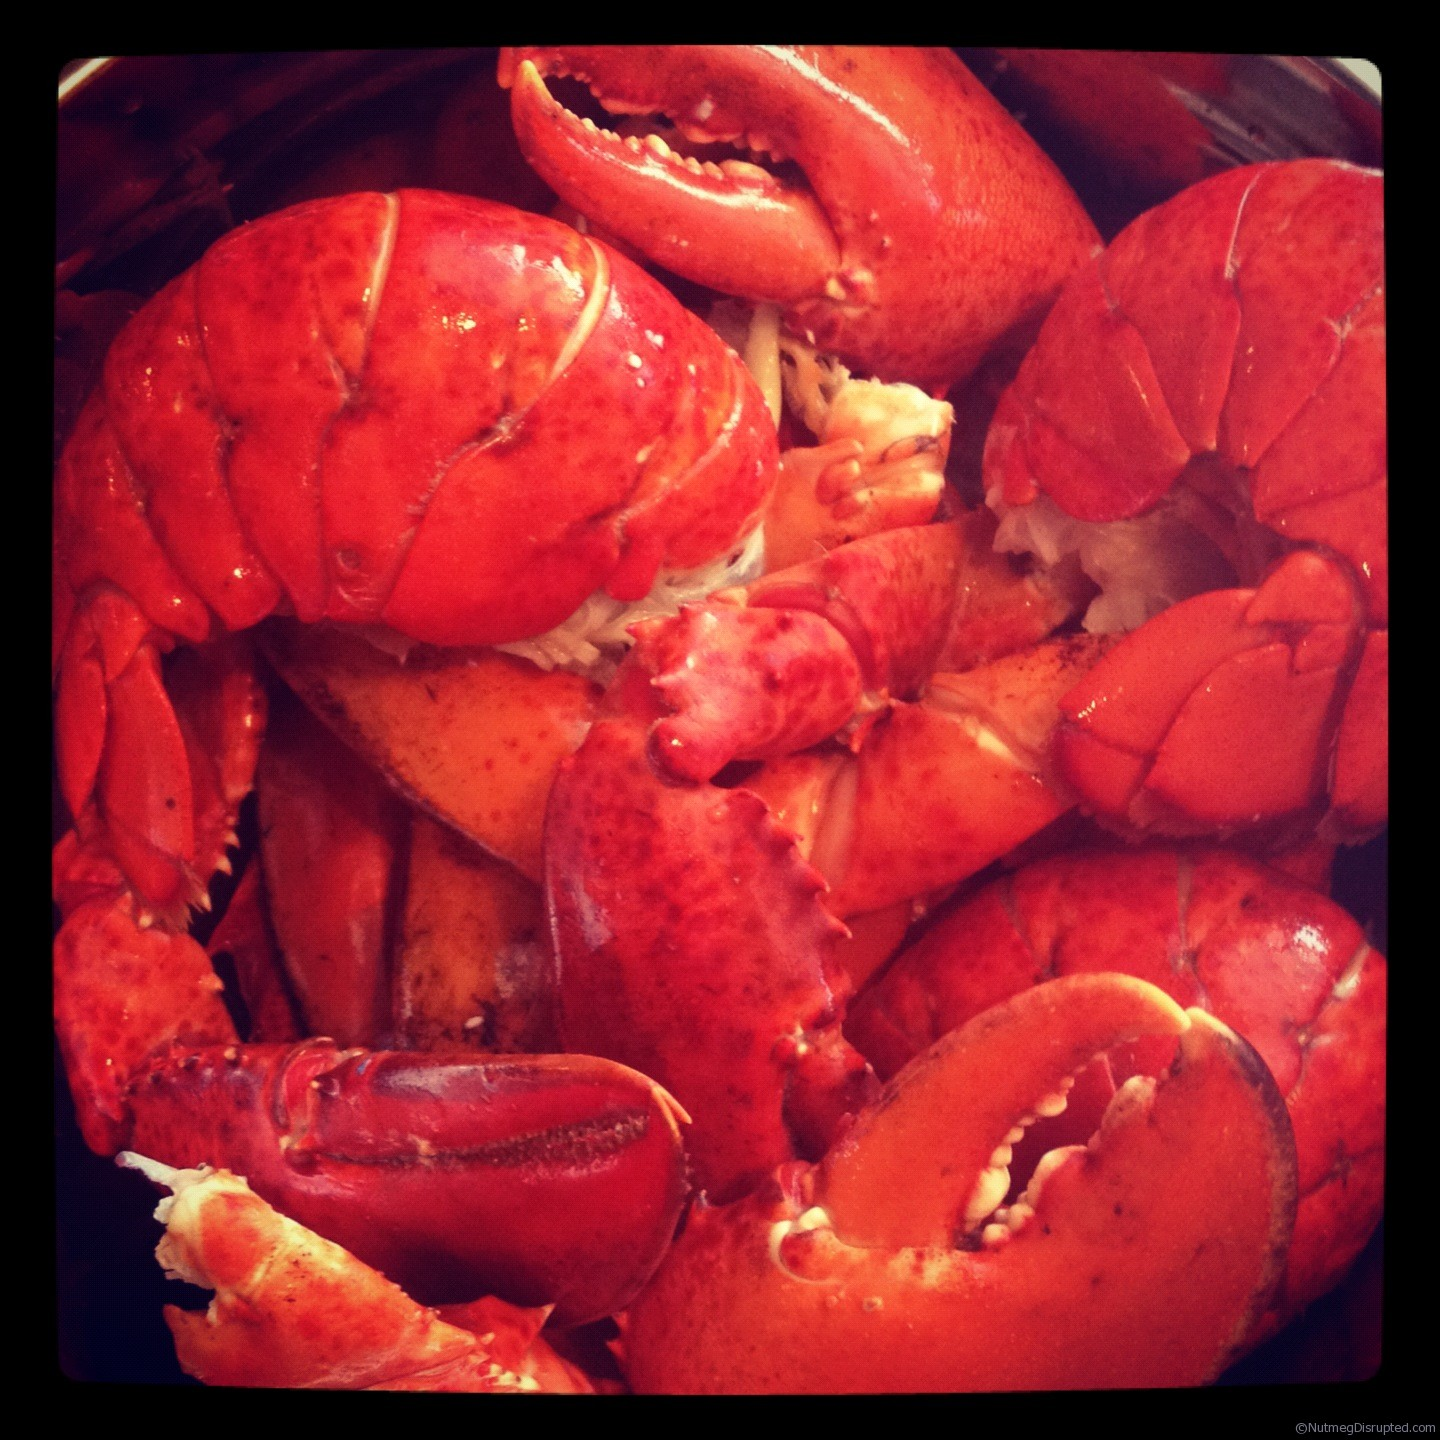 Fresh lobster boil in the Nutmeg Disrupted backyard